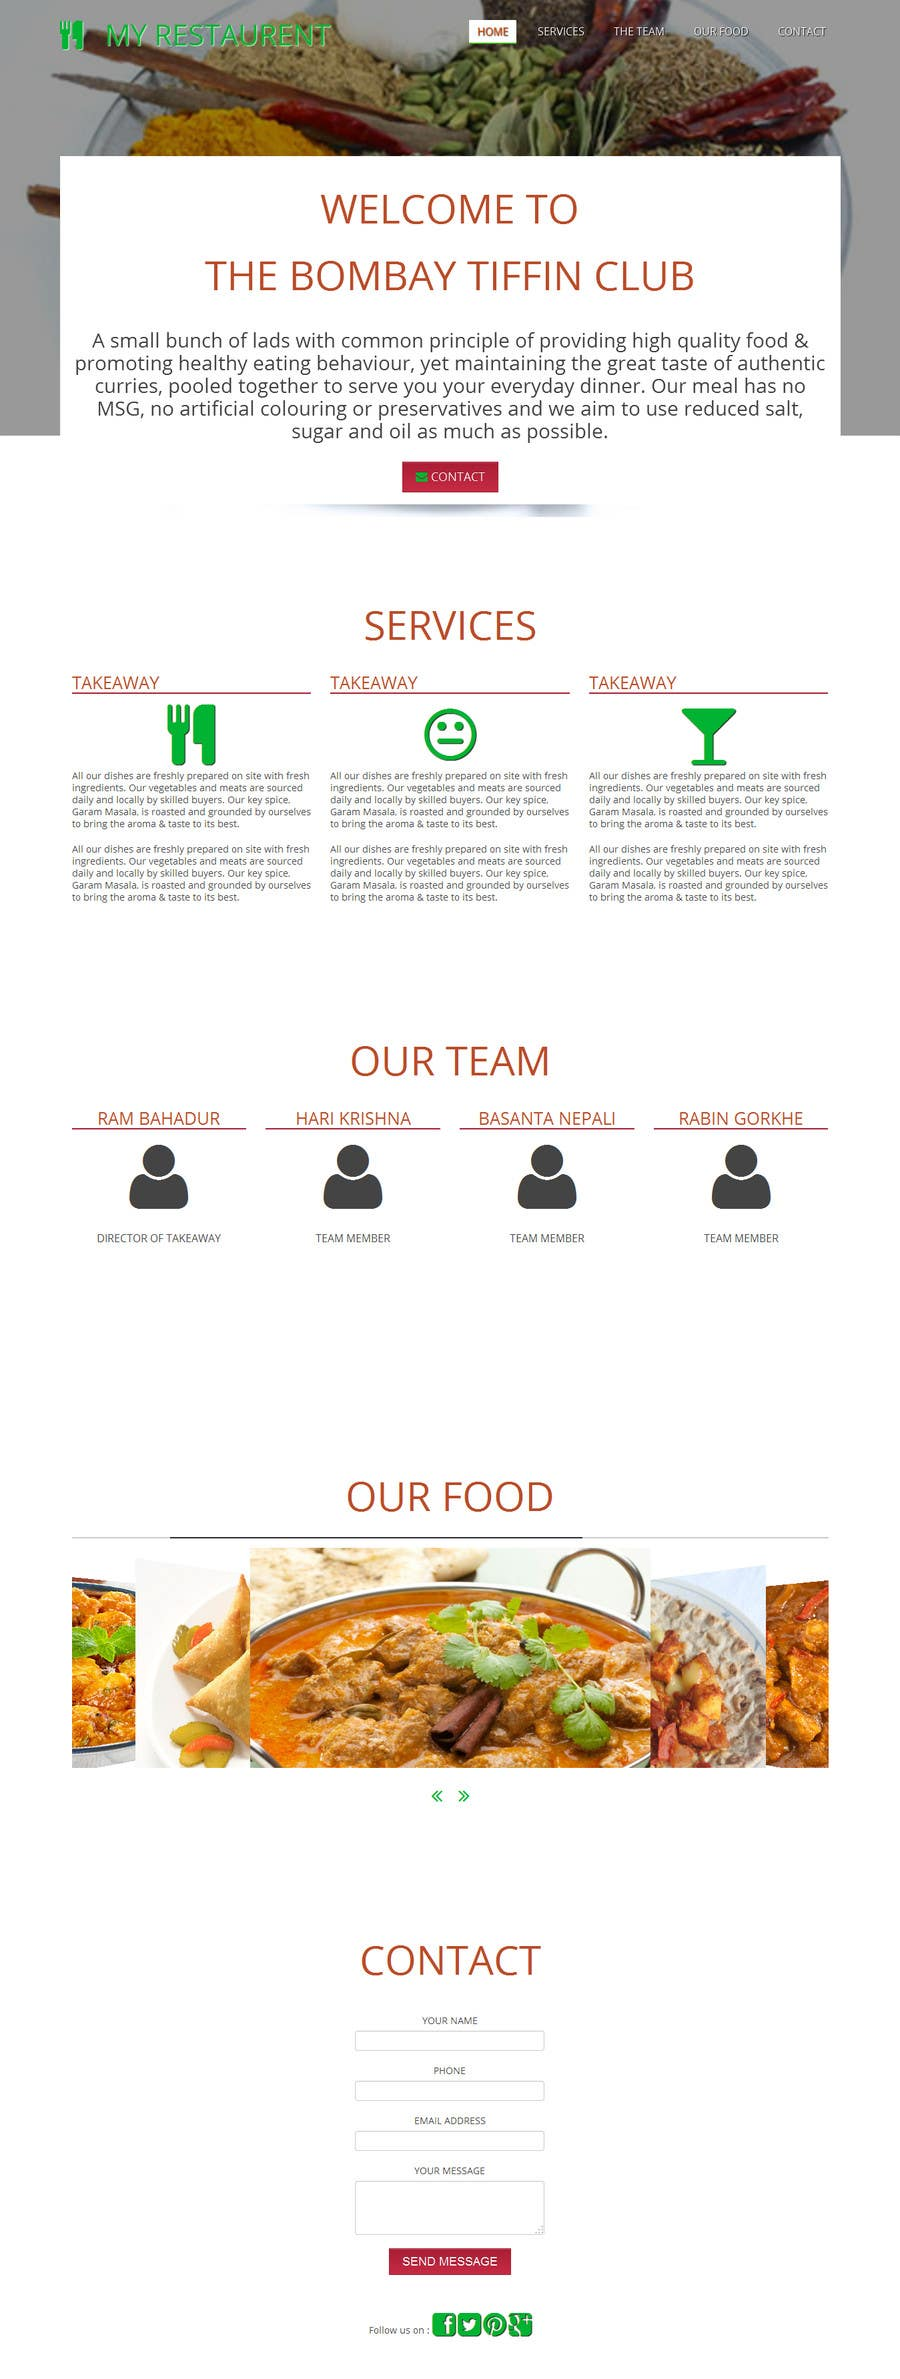 Penyertaan Peraduan #                                        6                                      untuk                                         Build a Website for a restaurant and a one page website for a small community